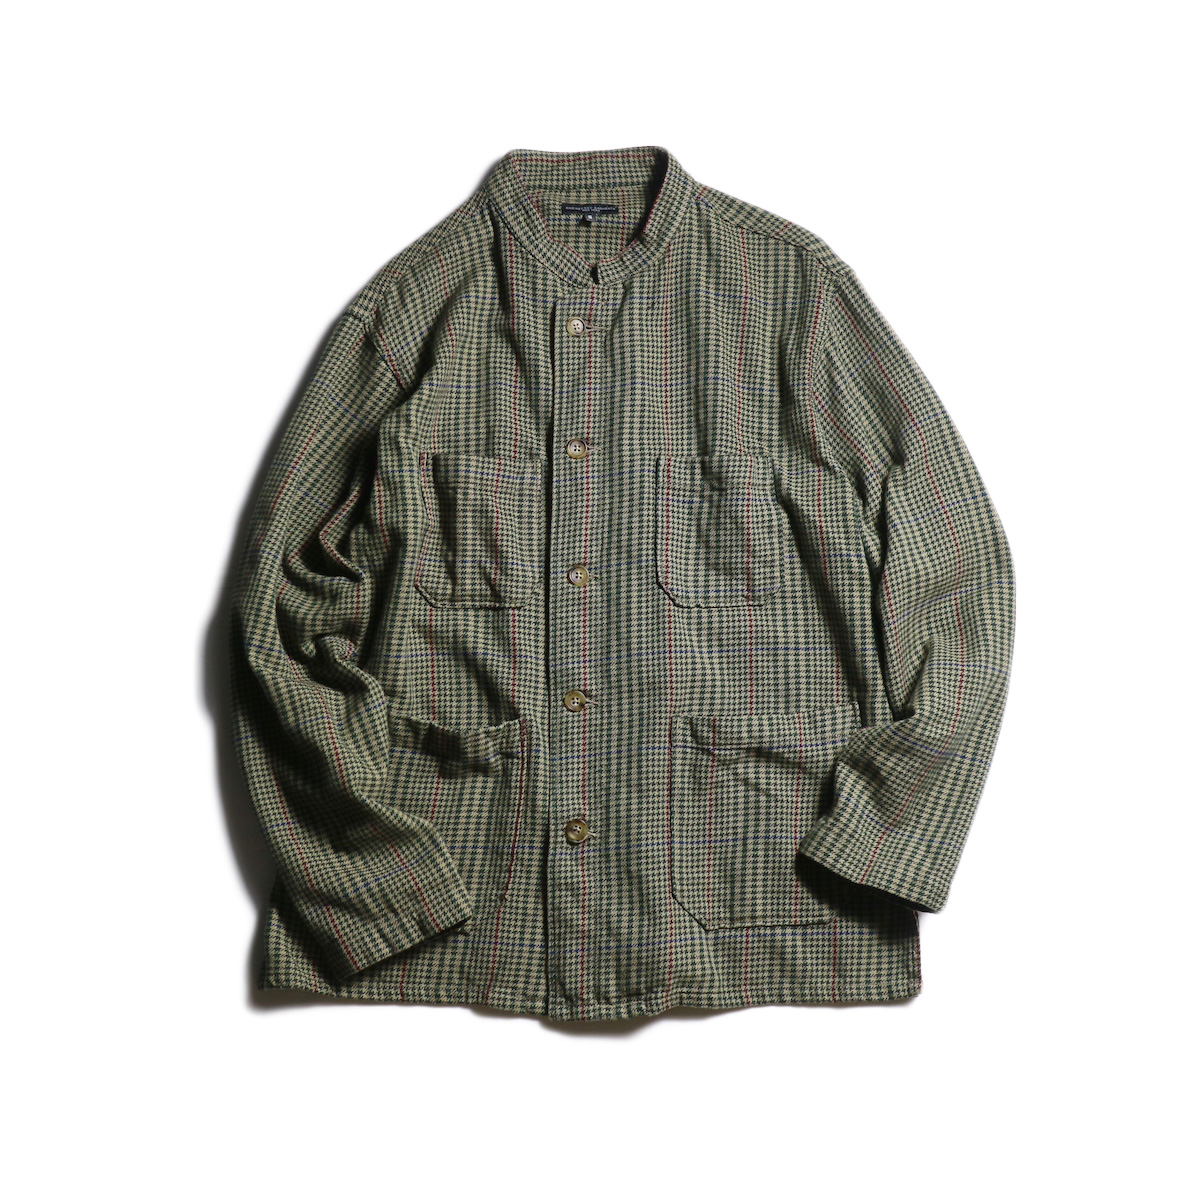 Engineered Garments / Dayton Shirt -Gunclub Check Twill (Brown)